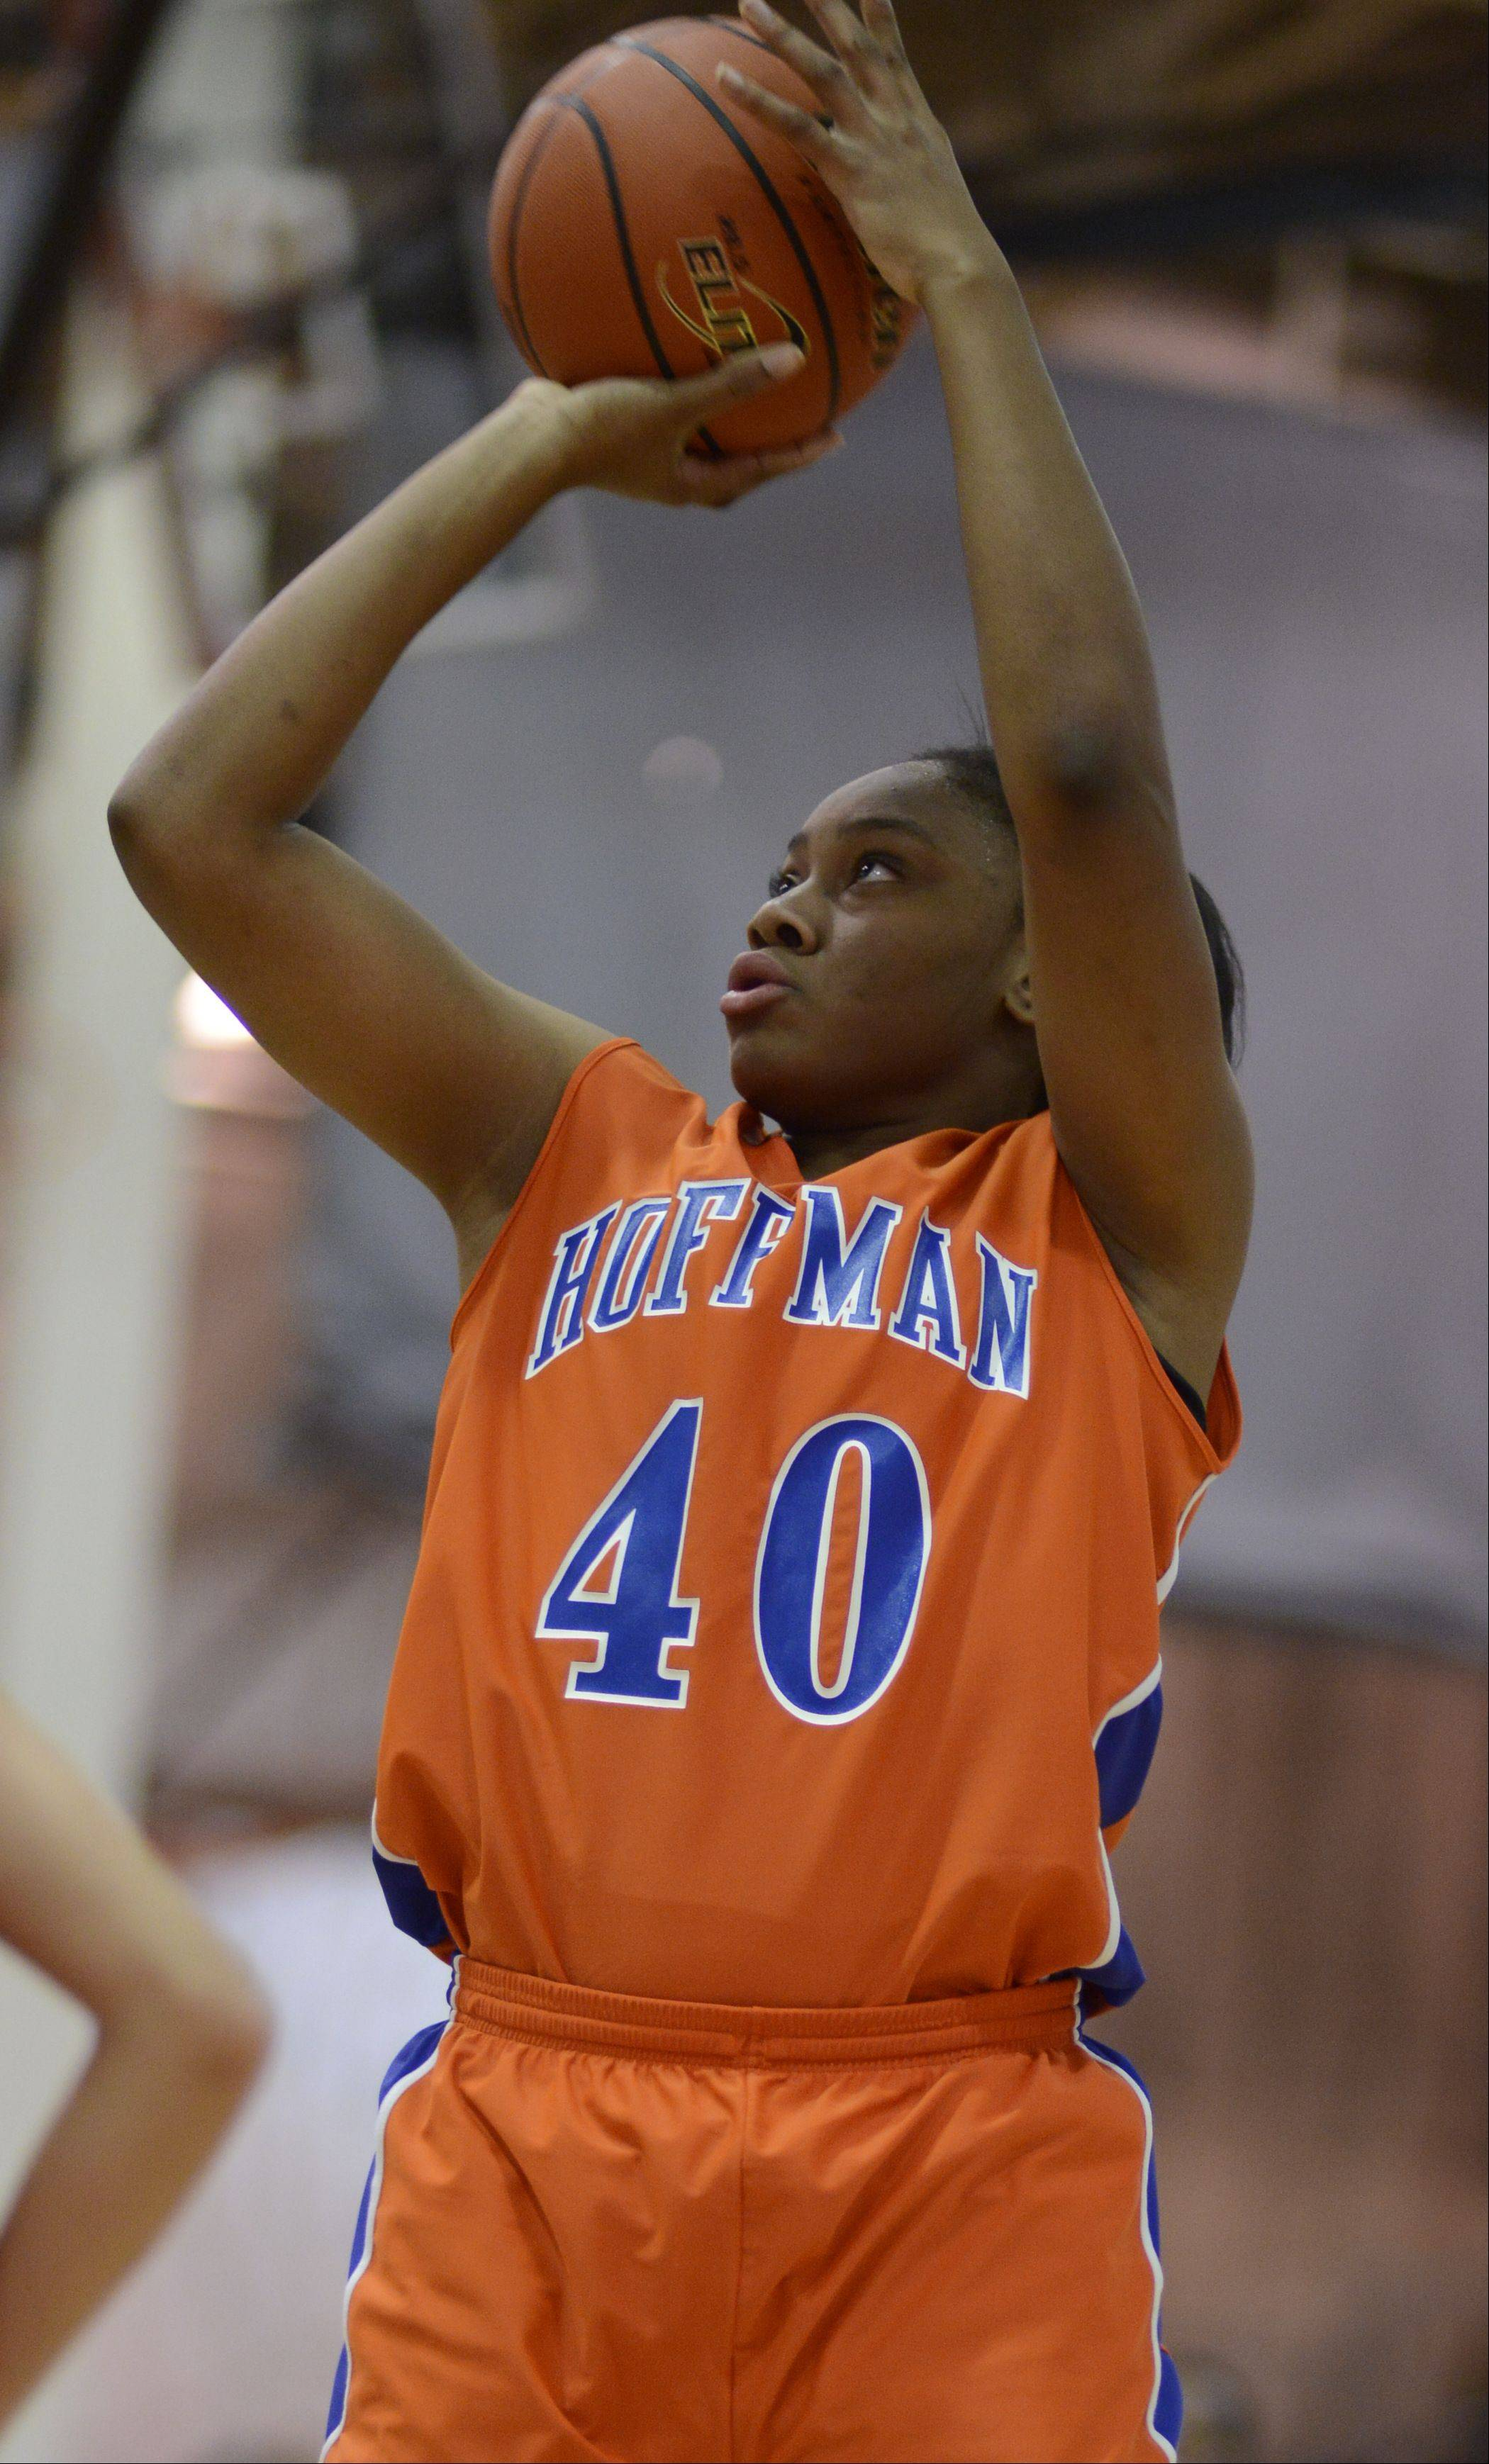 Images from the Hoffman Estates vs. Barrington girls basketball game on Wednesday, December 19th, in Barrington.